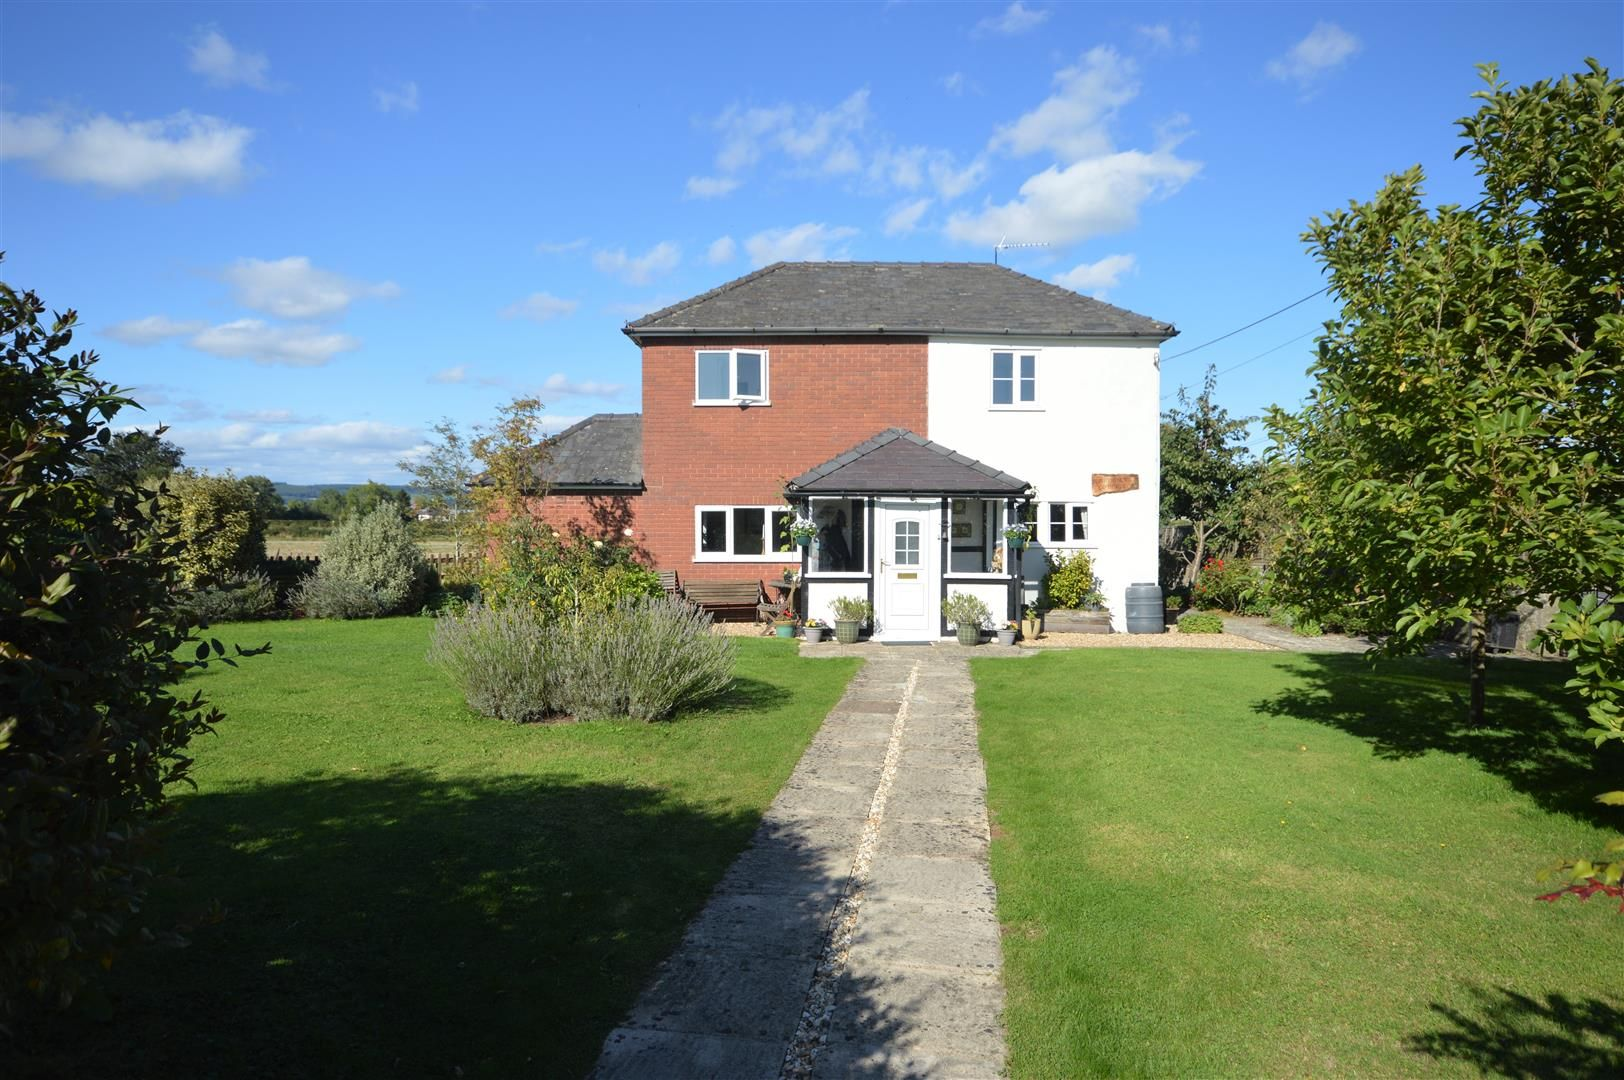 4 bed detached for sale in Shirlheath, HR6